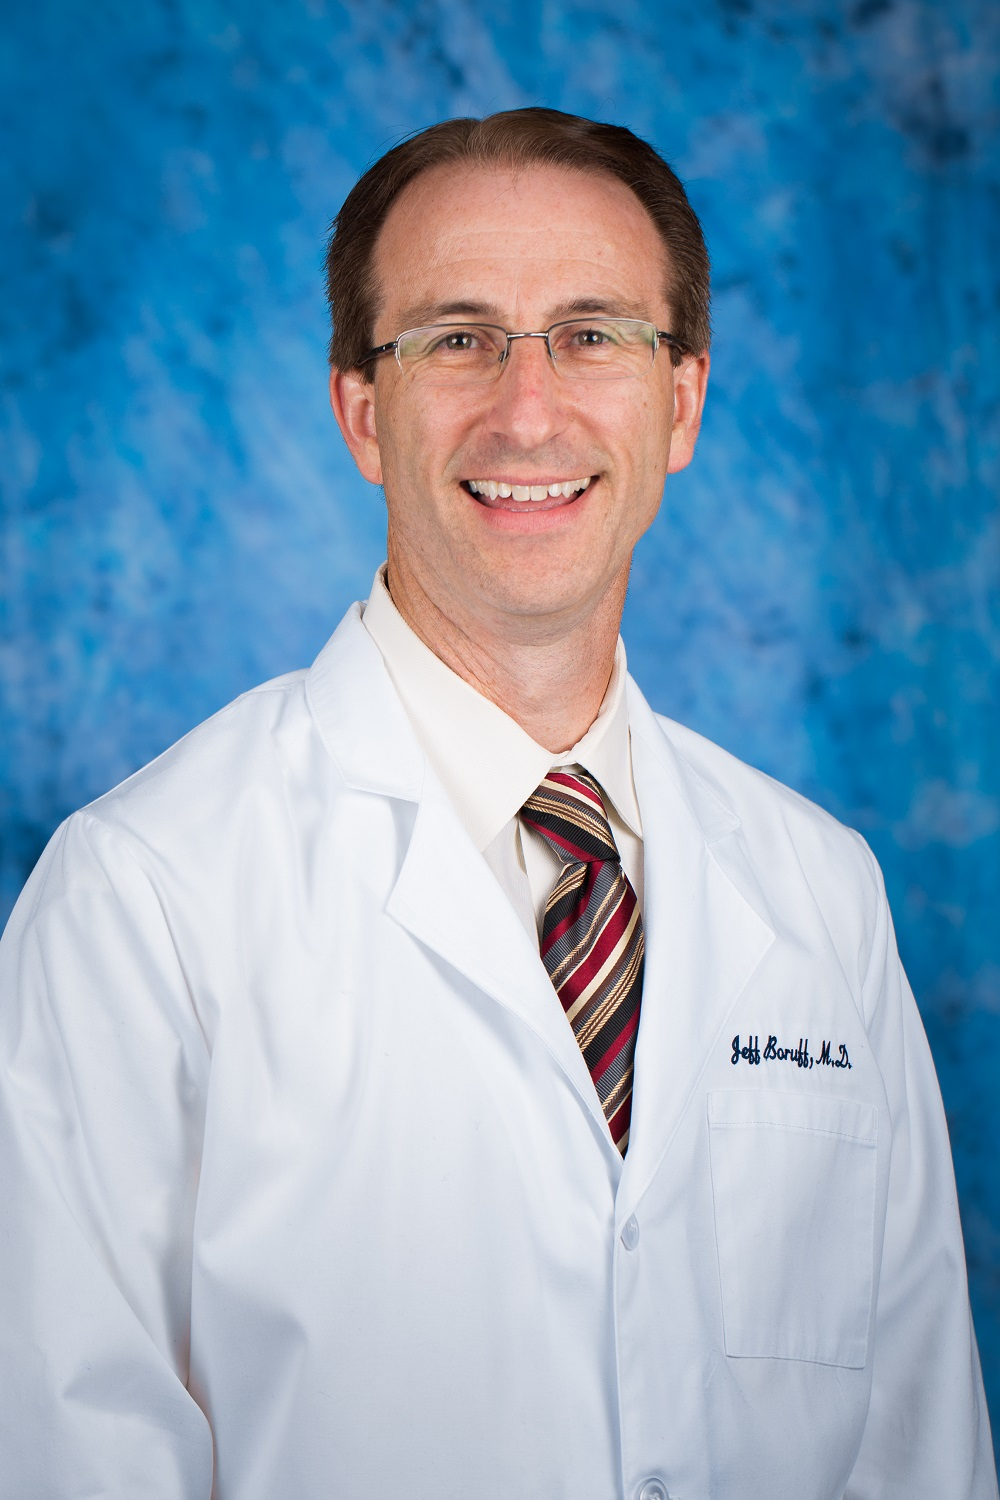 Jeff Boruff, MD